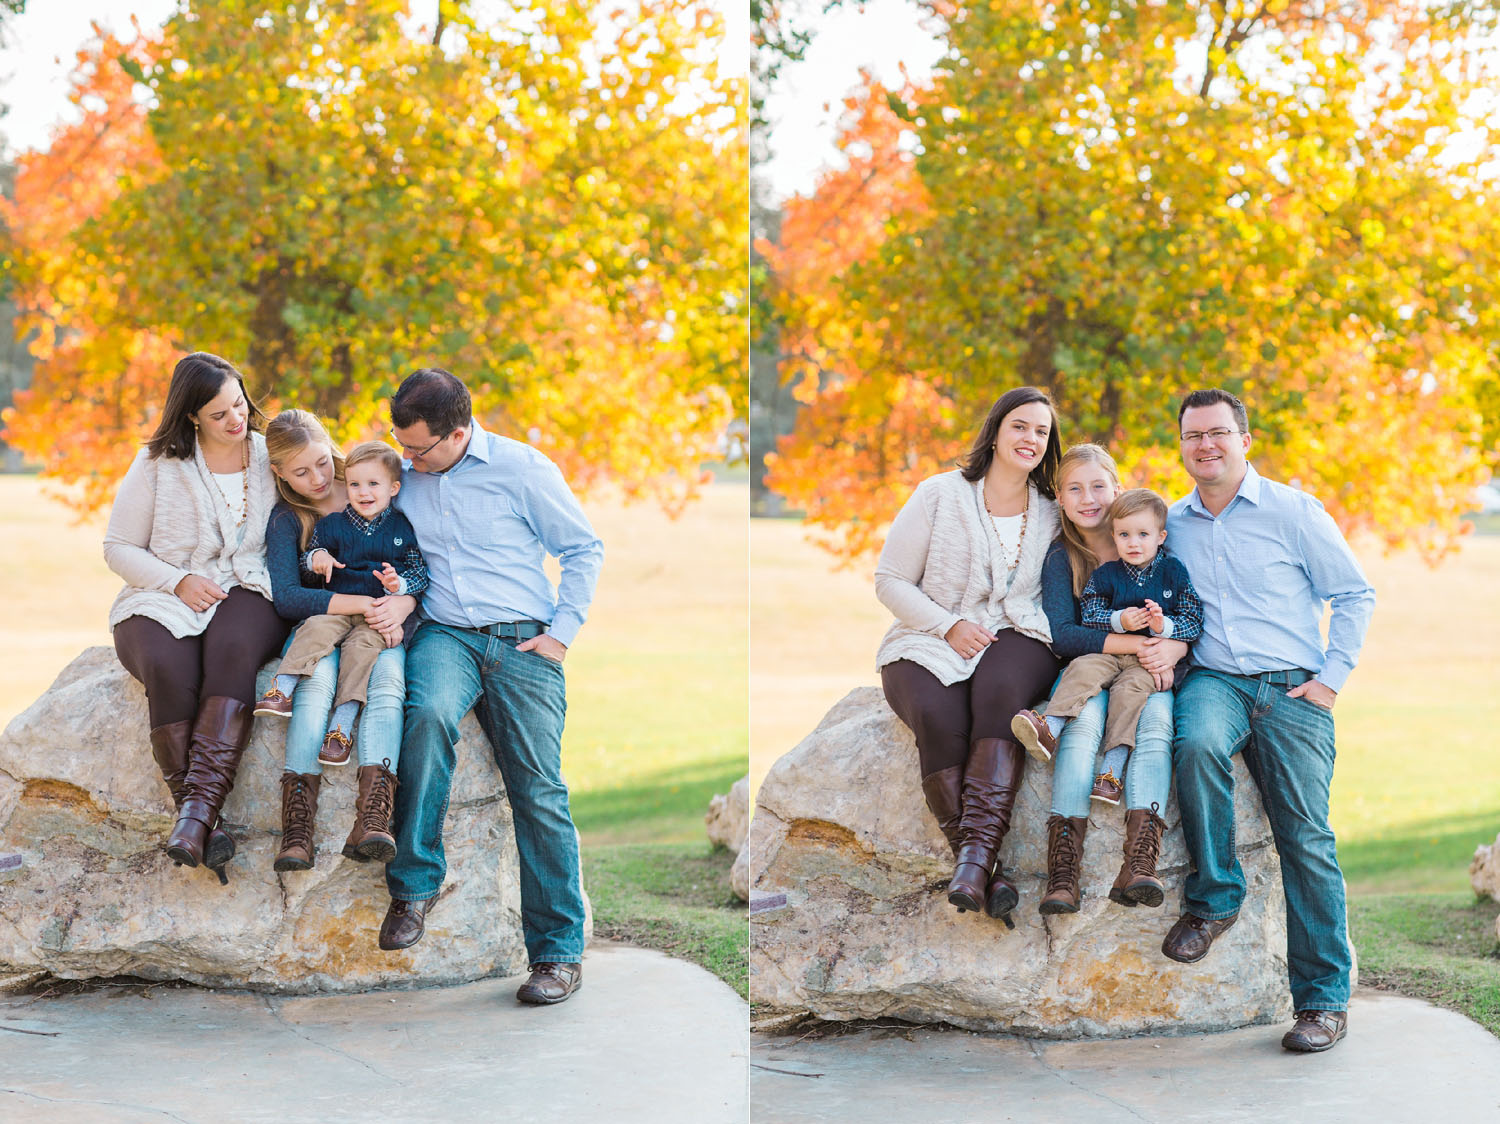 Beautiful Fall Family Photography in Bakersfield, California